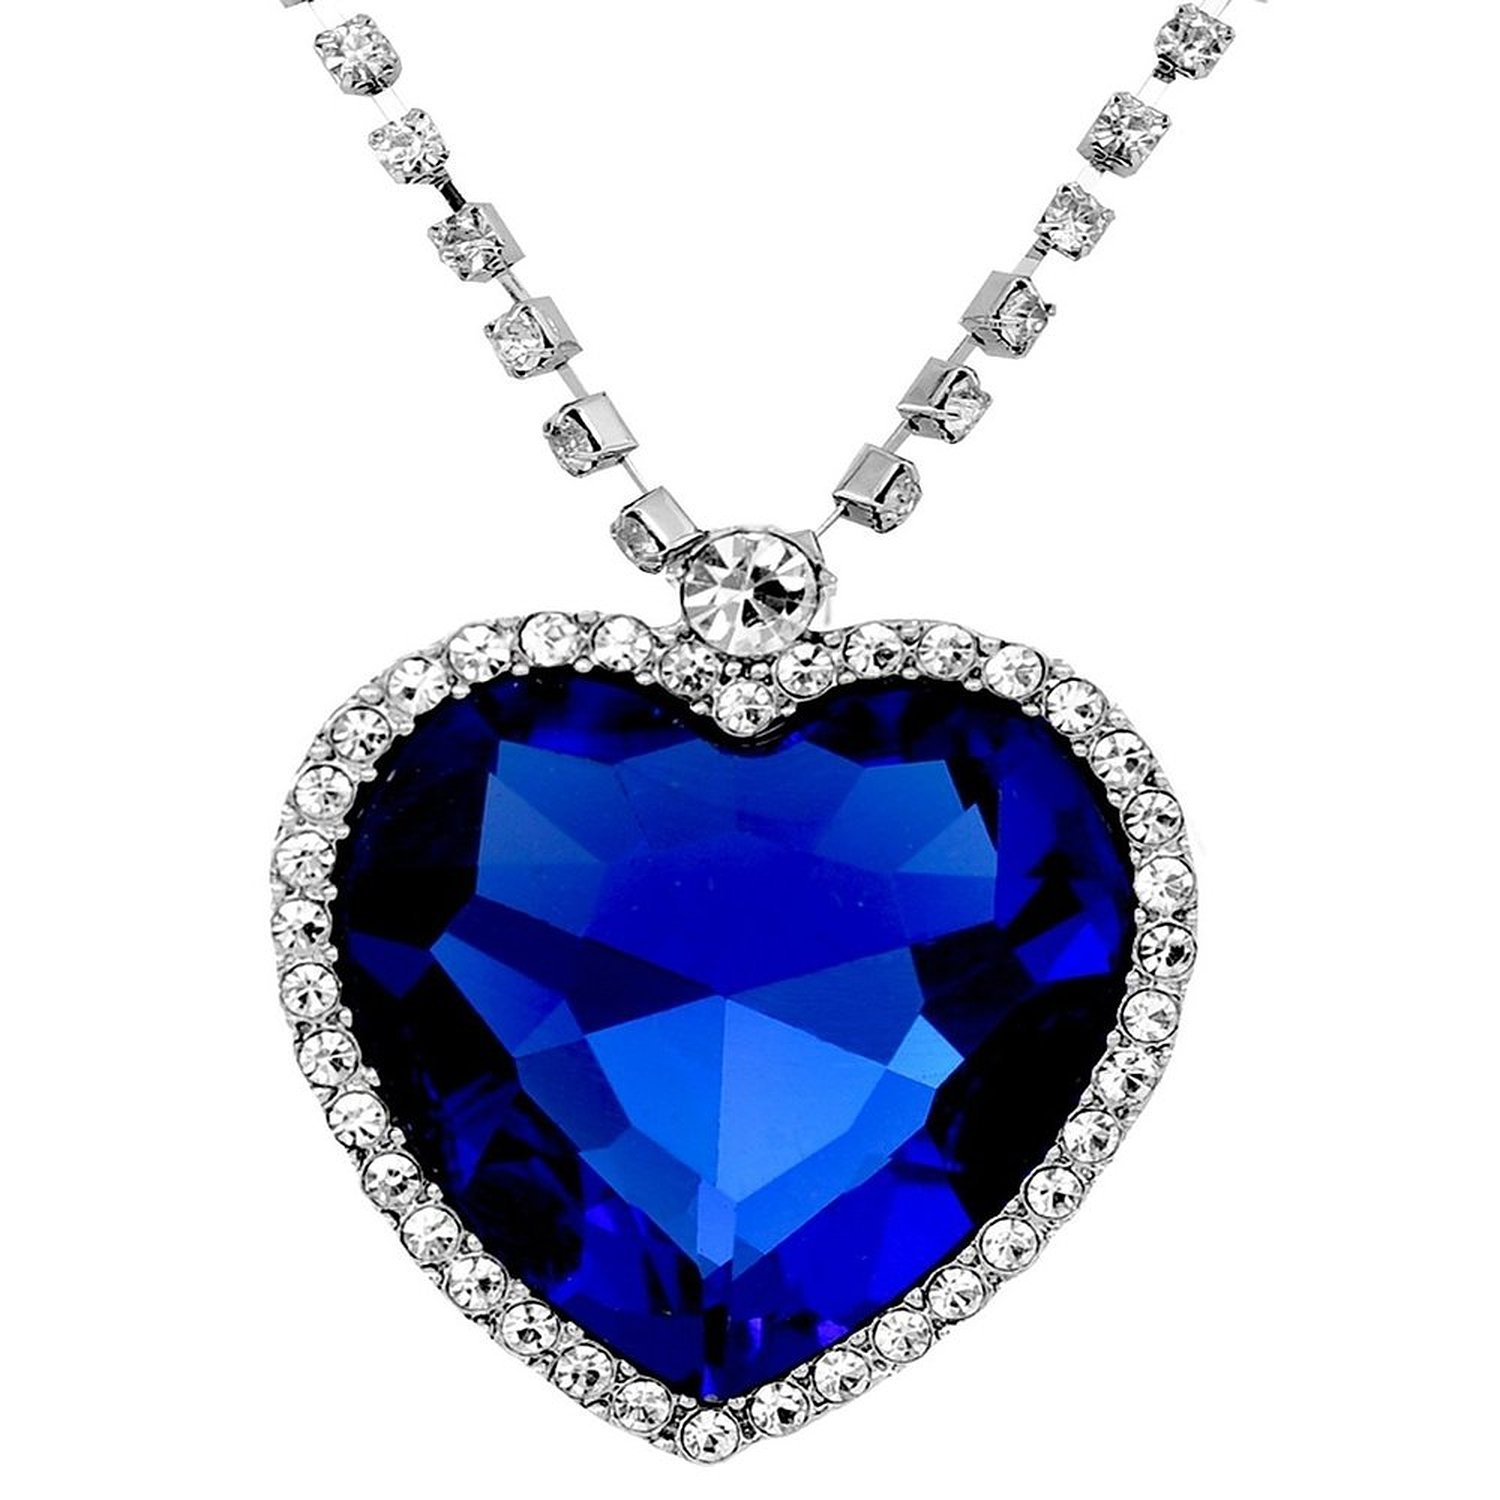 Buy shining diva fashion the famous titanic heart of ocean pendant buy shining diva fashion the famous titanic heart of ocean pendant necklace for women girls online at low prices in india amazon jewellery store aloadofball Choice Image